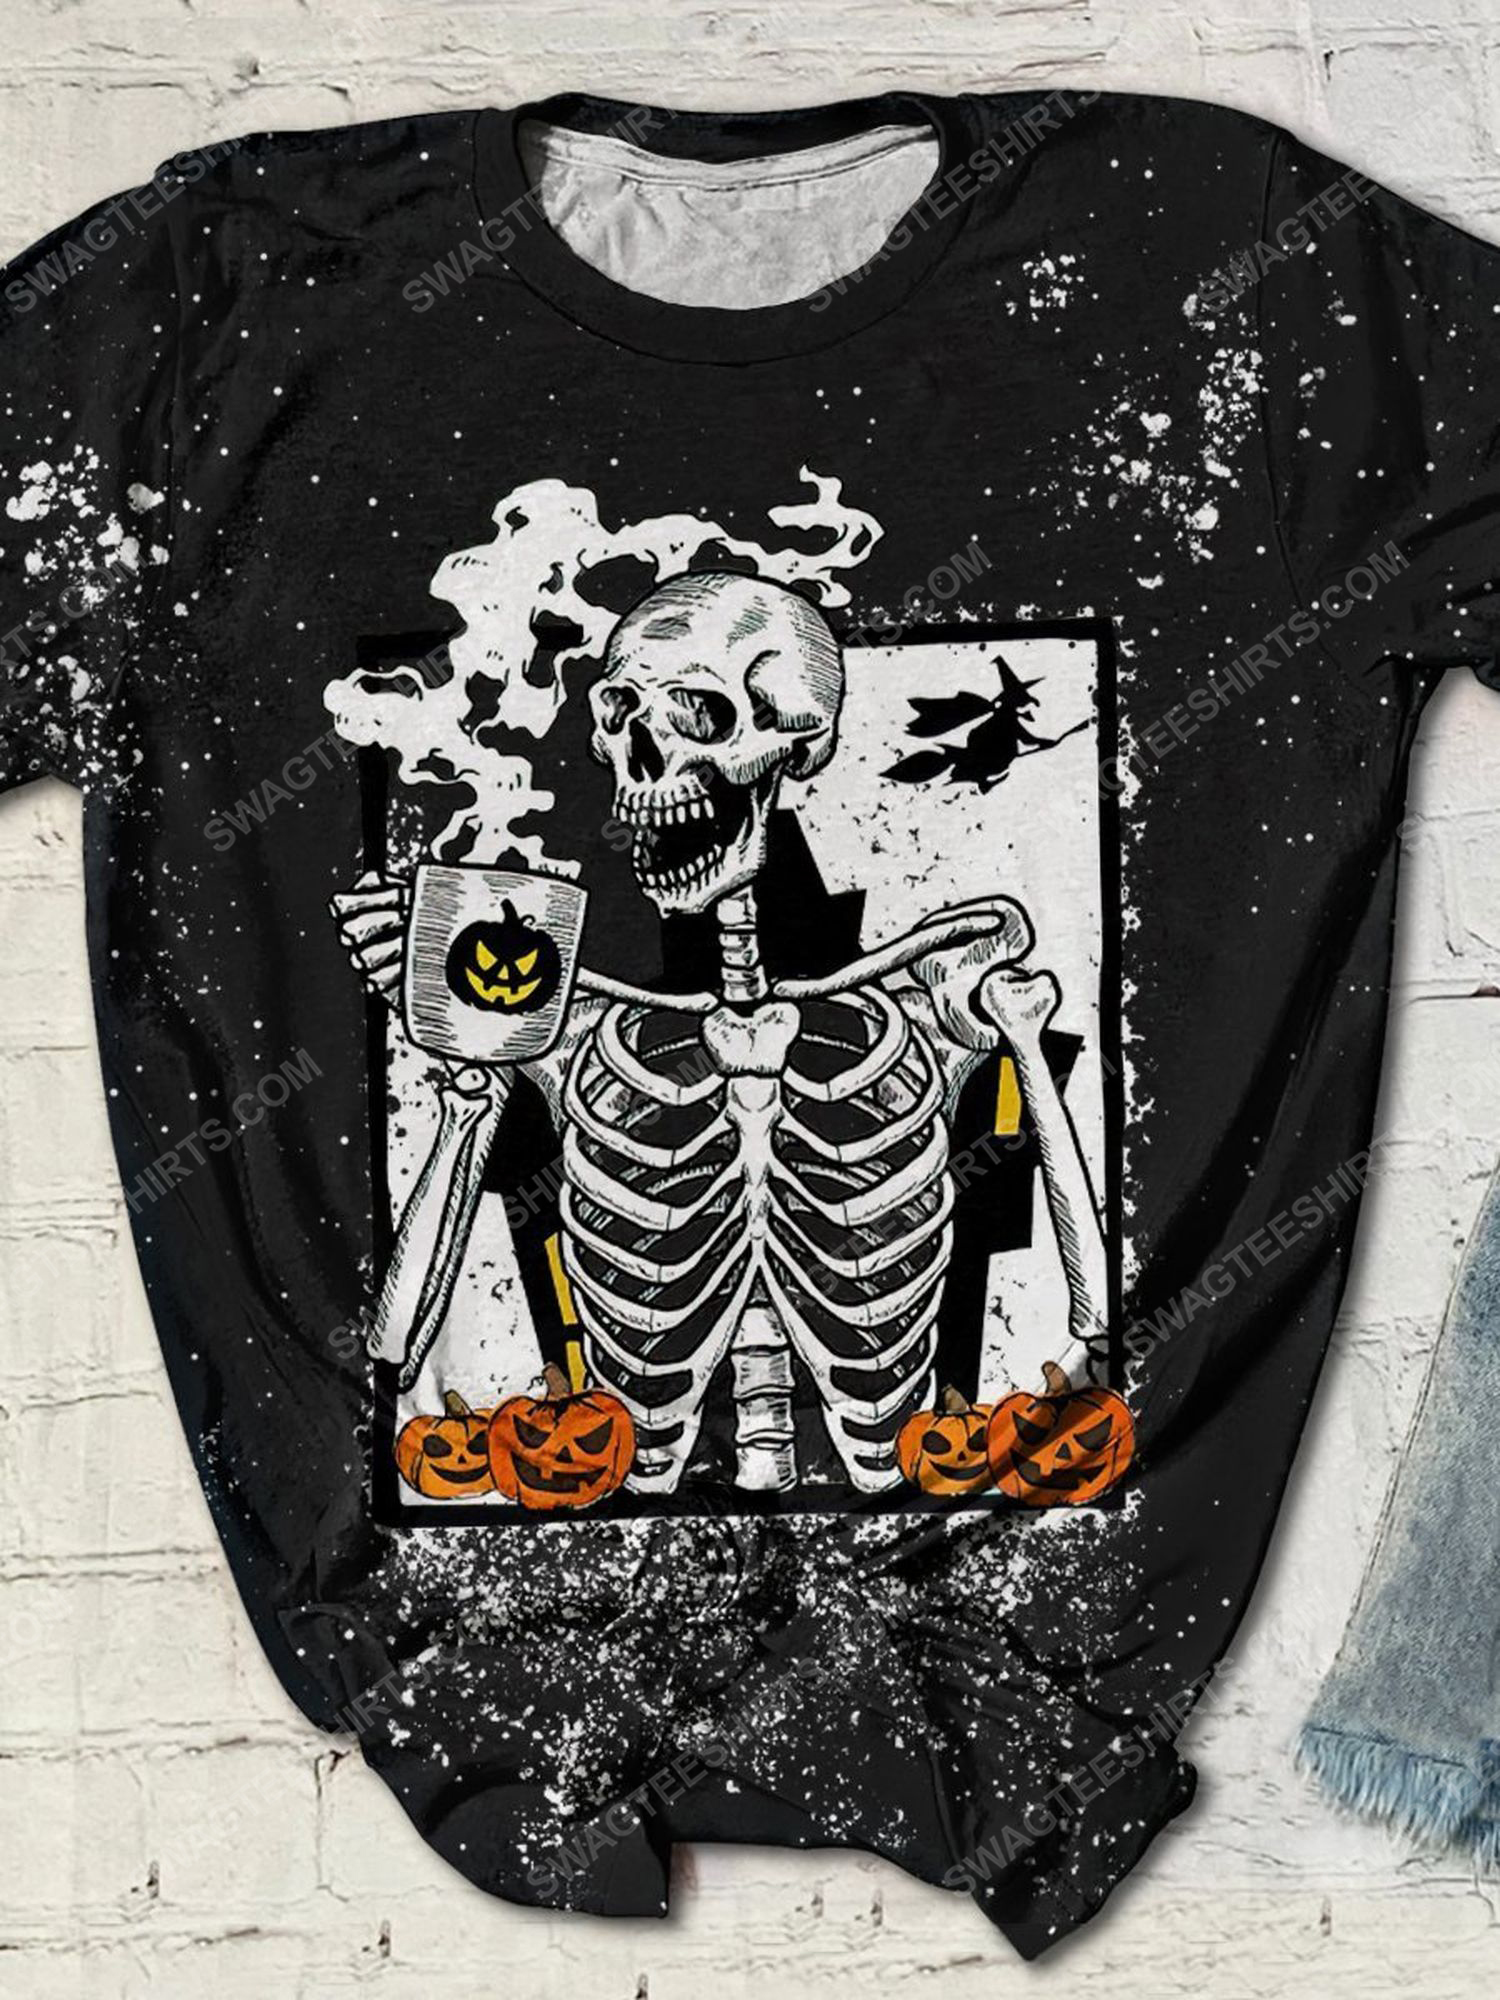 Halloween skull and coffee bleached shirt 1 - Copy (2)